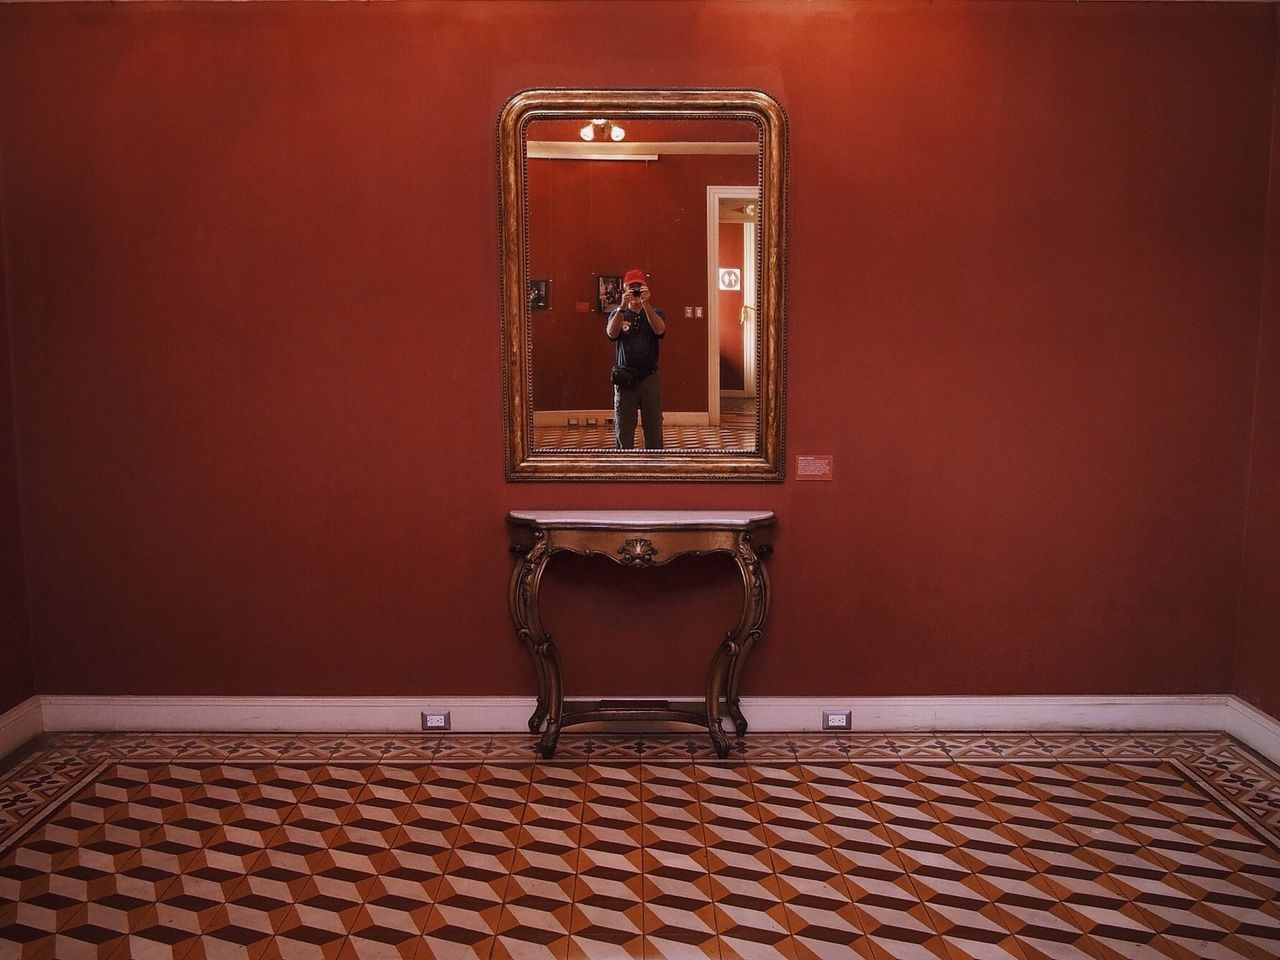 Reflection of boy making photo in mirror